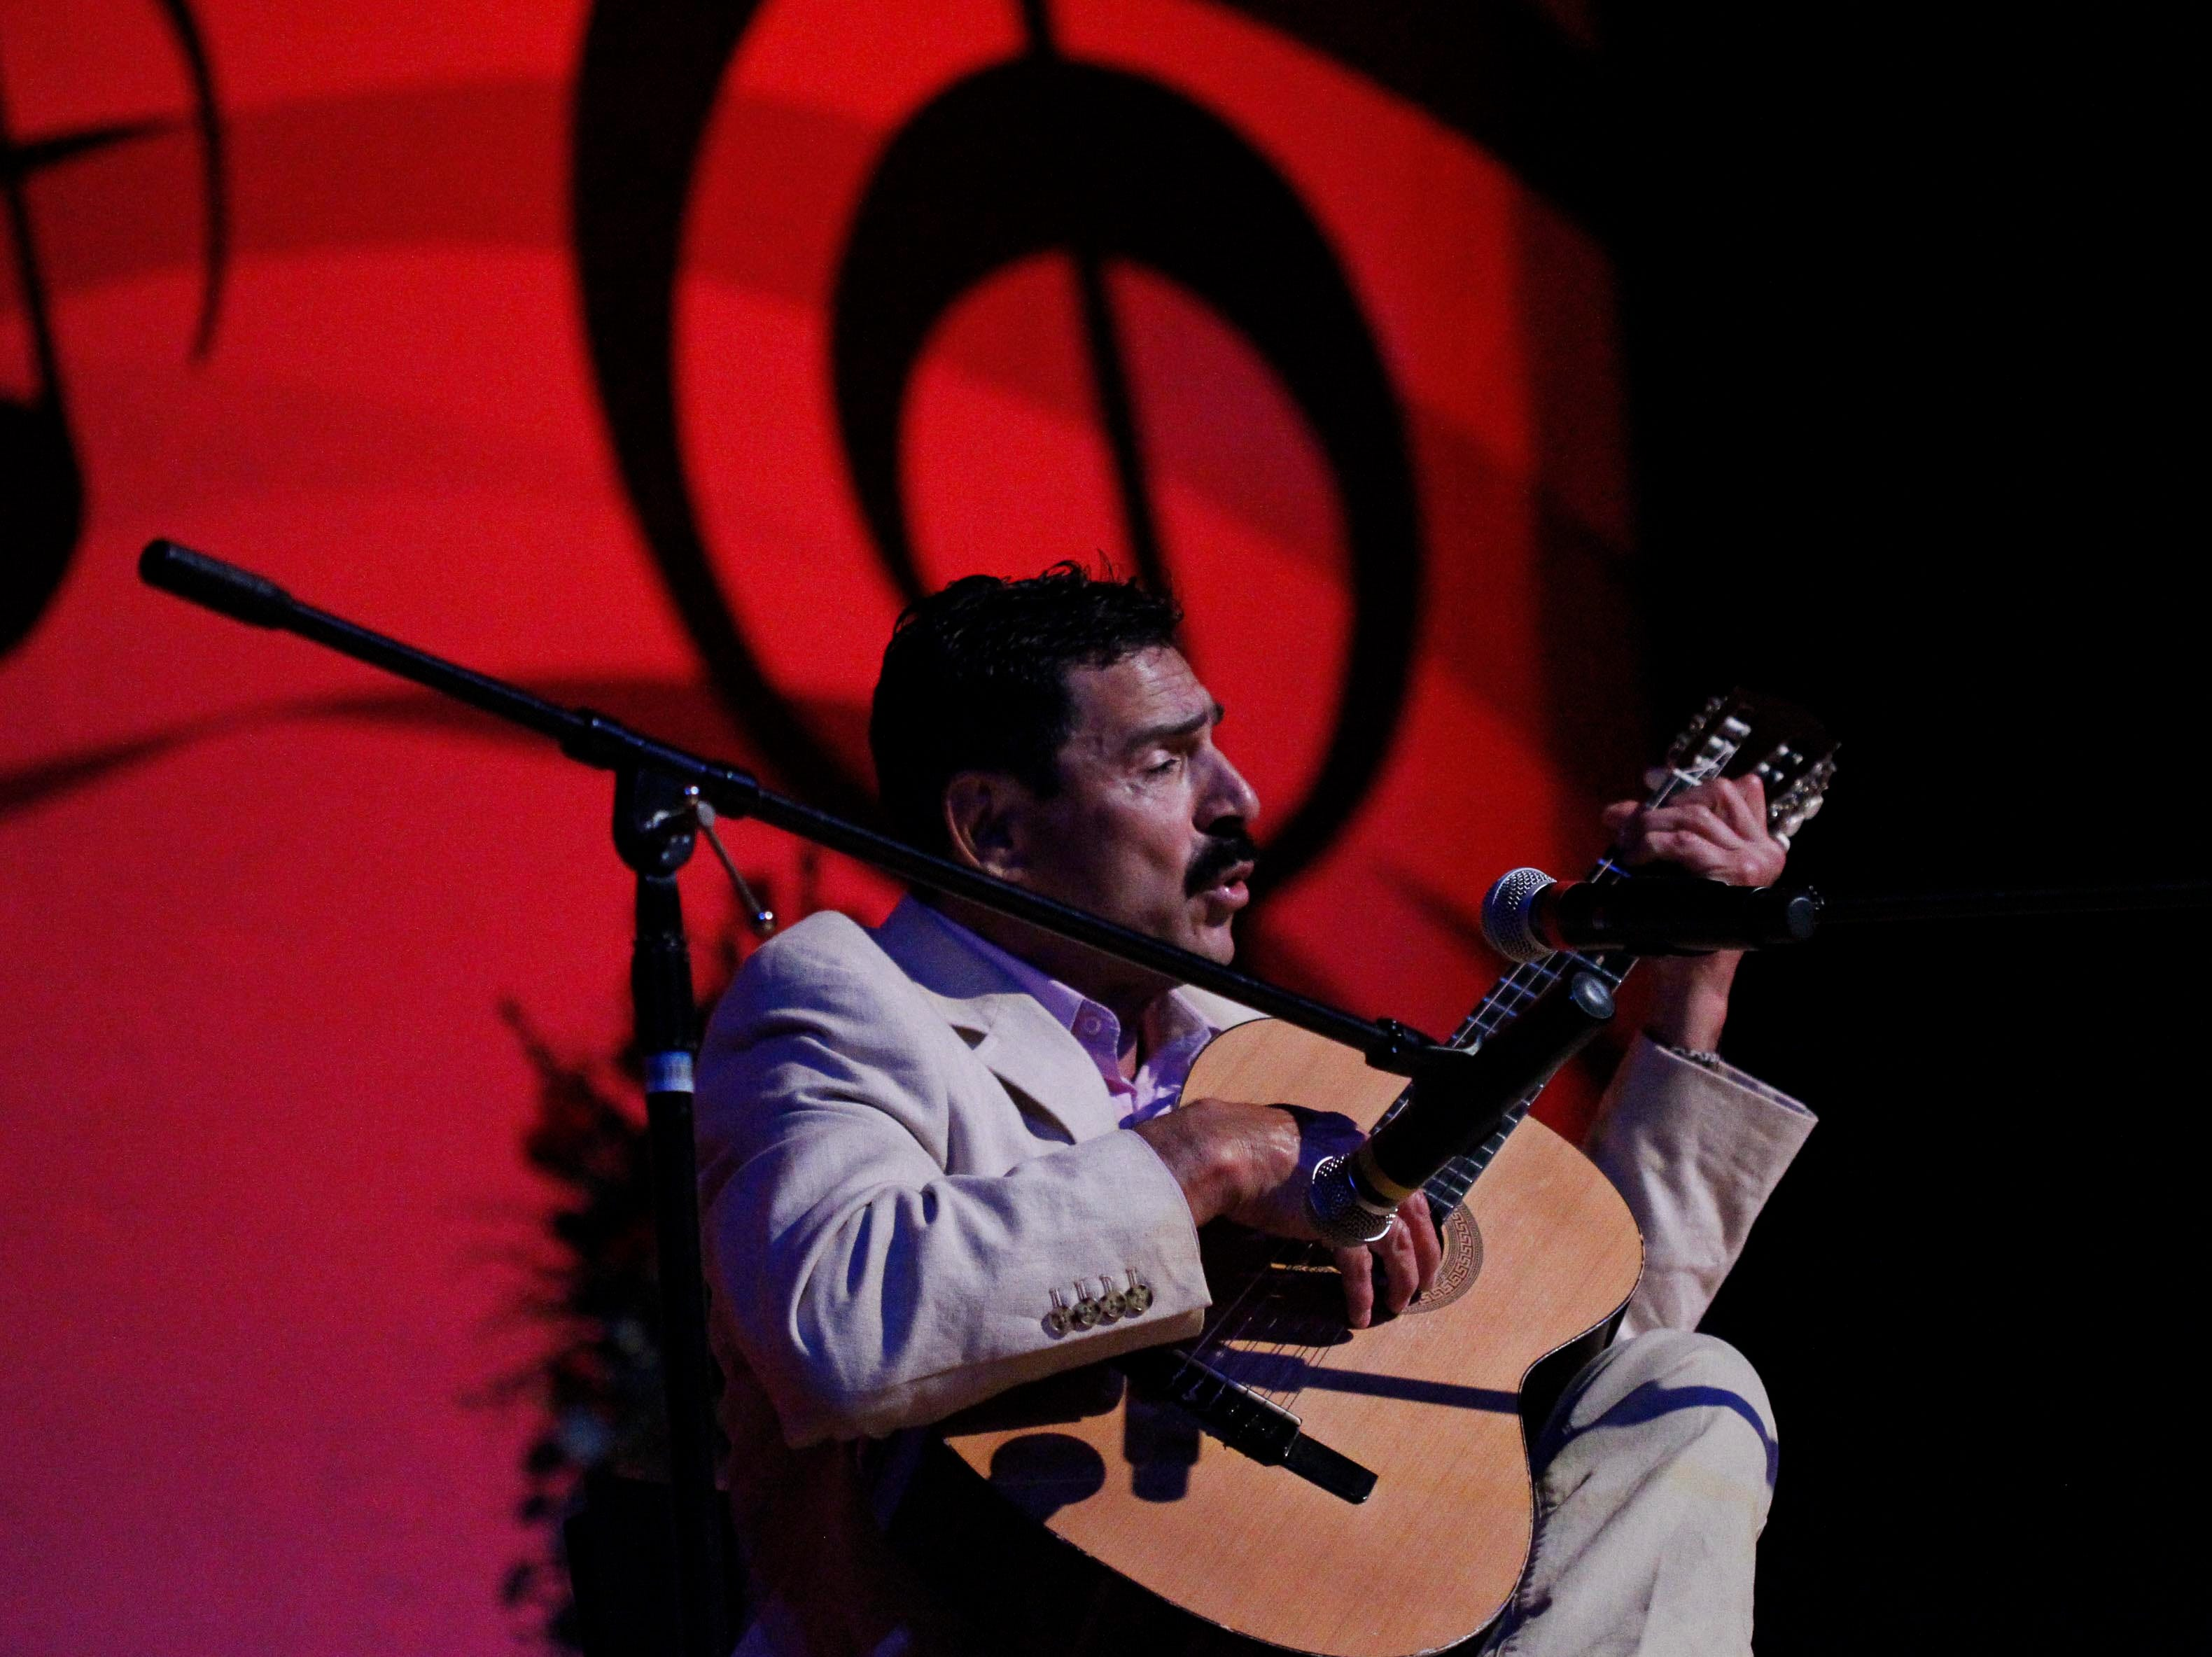 Francisco Peñuelas sings while playing his guitar during the 12th annual Noche Bohemia at Sherwood Hall on Saturday, April 27, 2019 in Salinas, Calif.